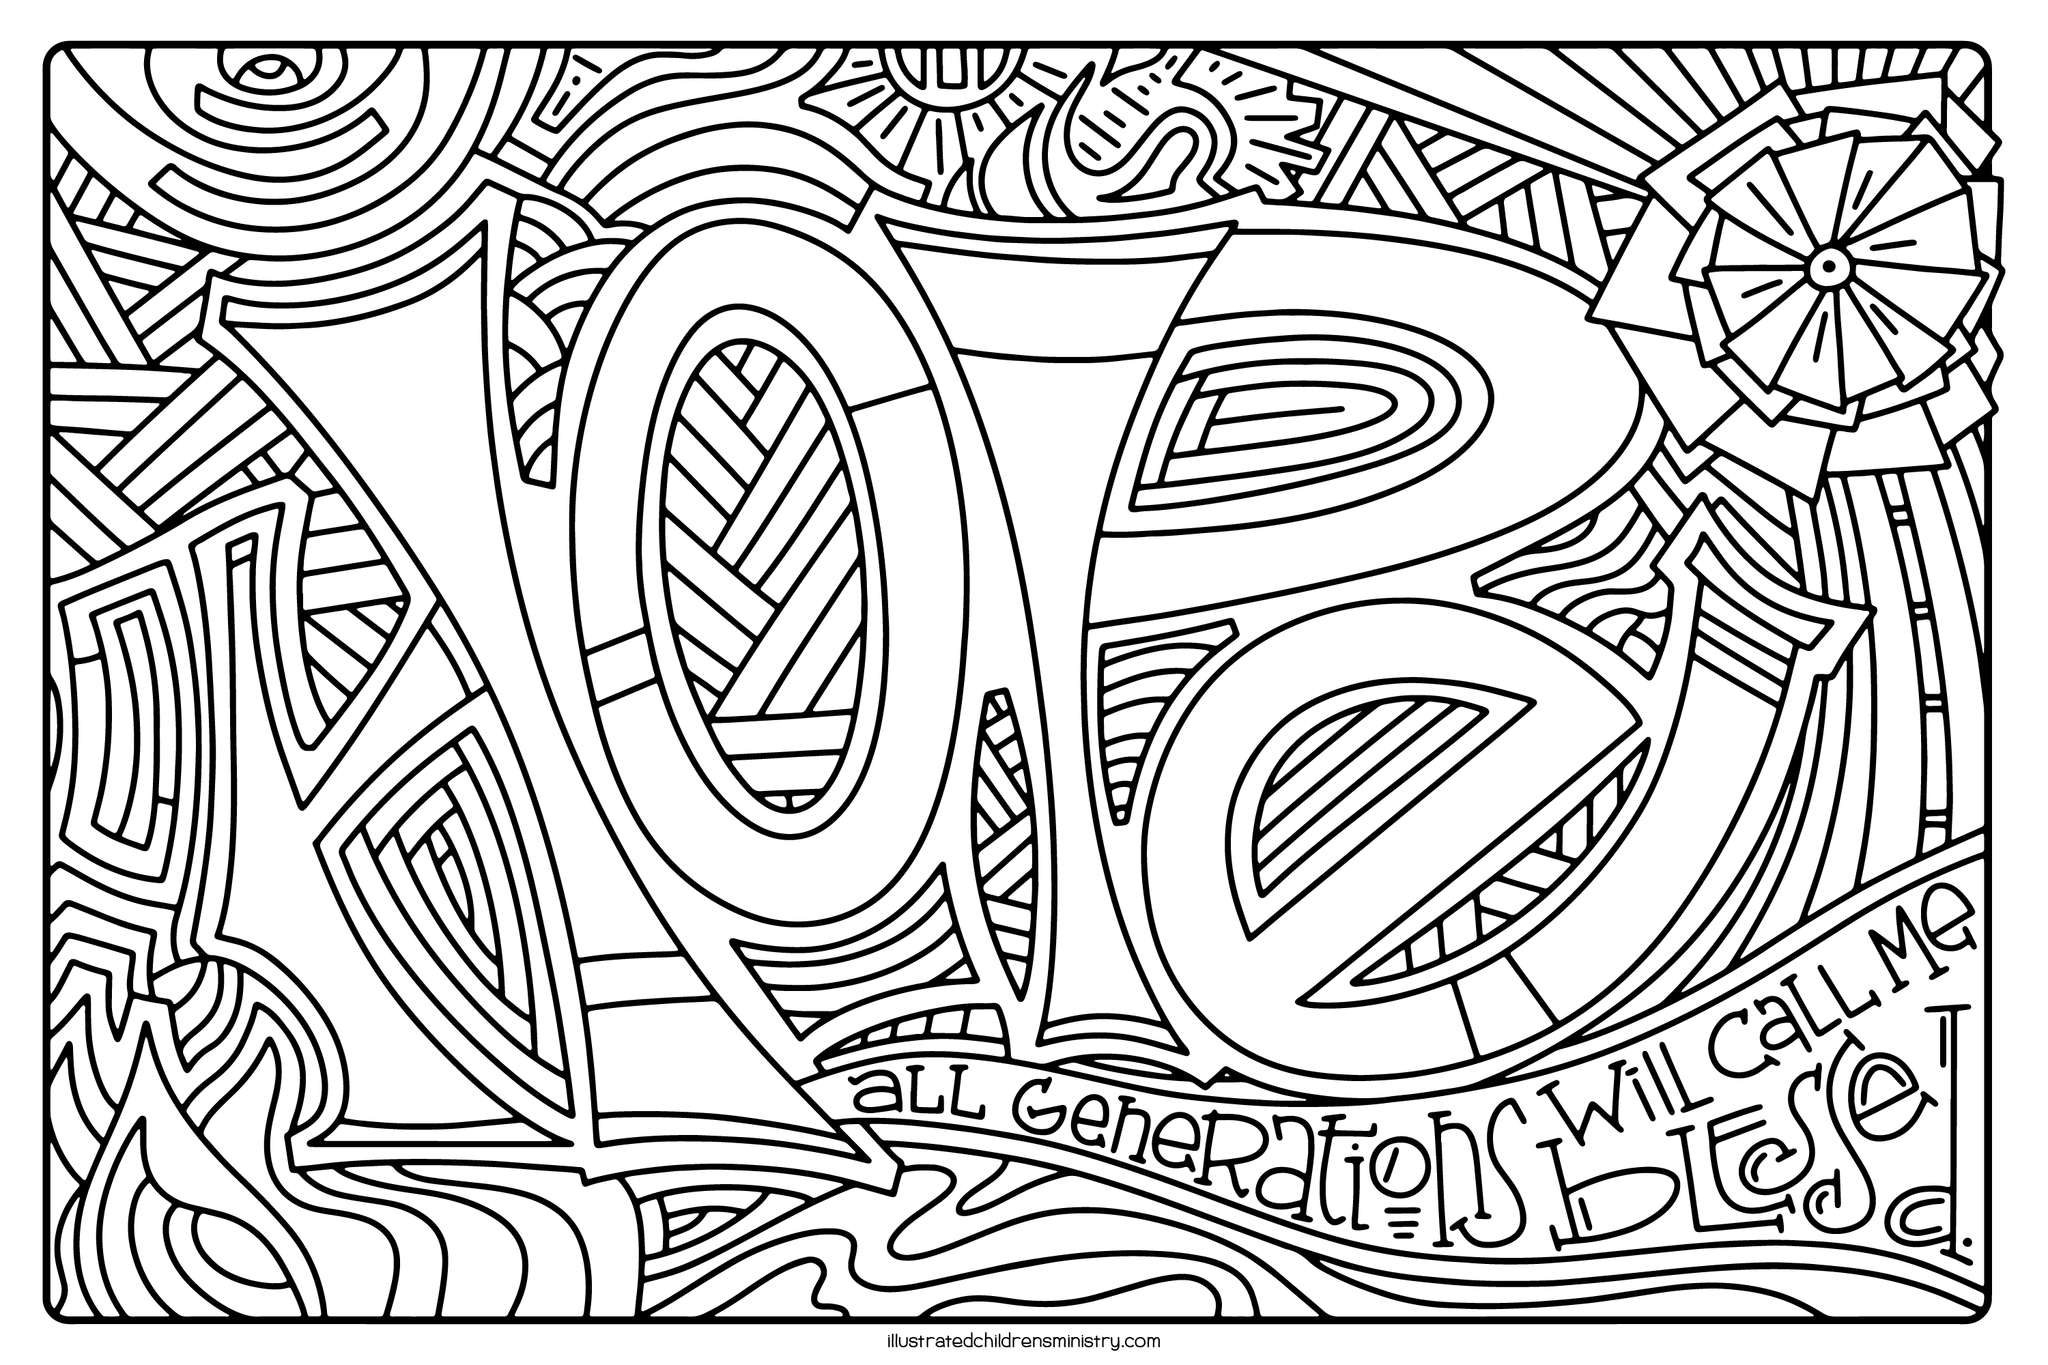 Mary's Song Coloring Page - Hope